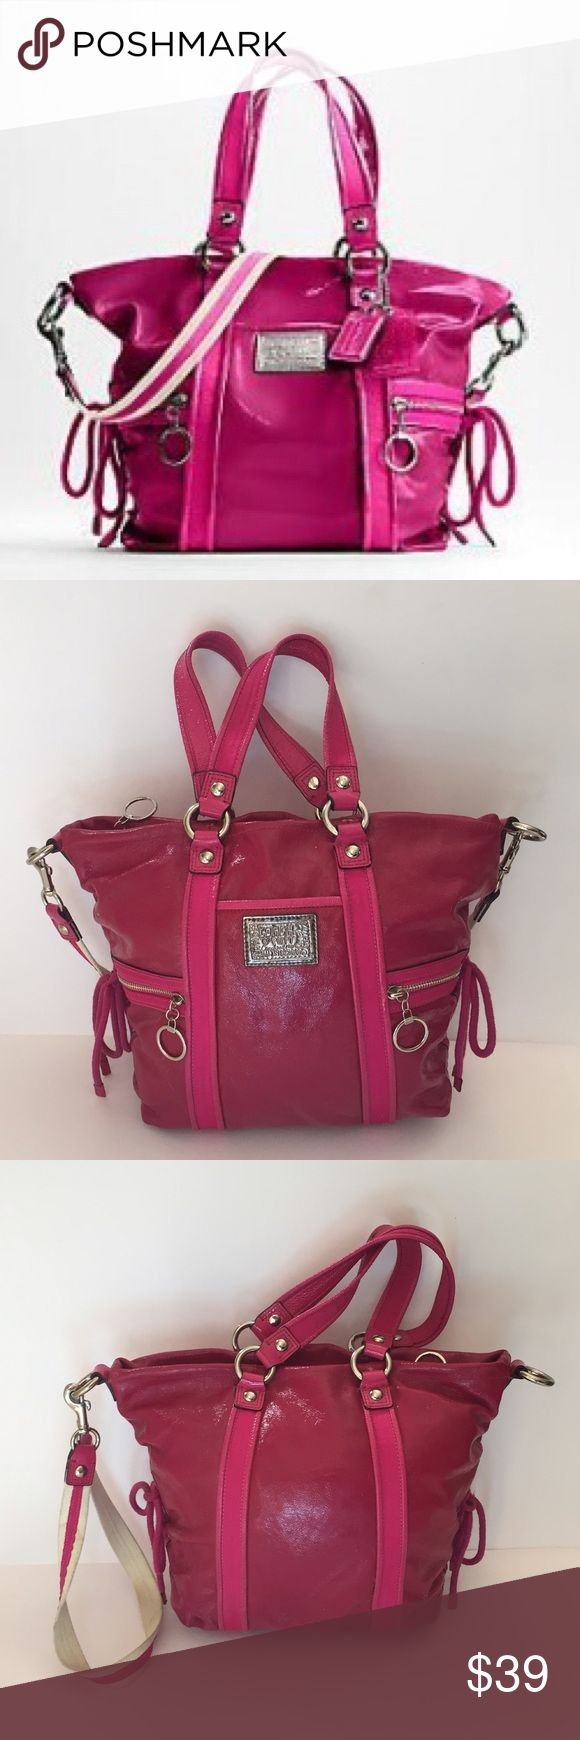 Coach Poppy Crossbody Bag In good USED condition with signs of wear on the leather inside also has signs of wear!! But a beautiful style CHECK PICS!! 016787901 signs of wear on crossbody strap and on handles. Missing coach tag Coach Bags Crossbody Bags